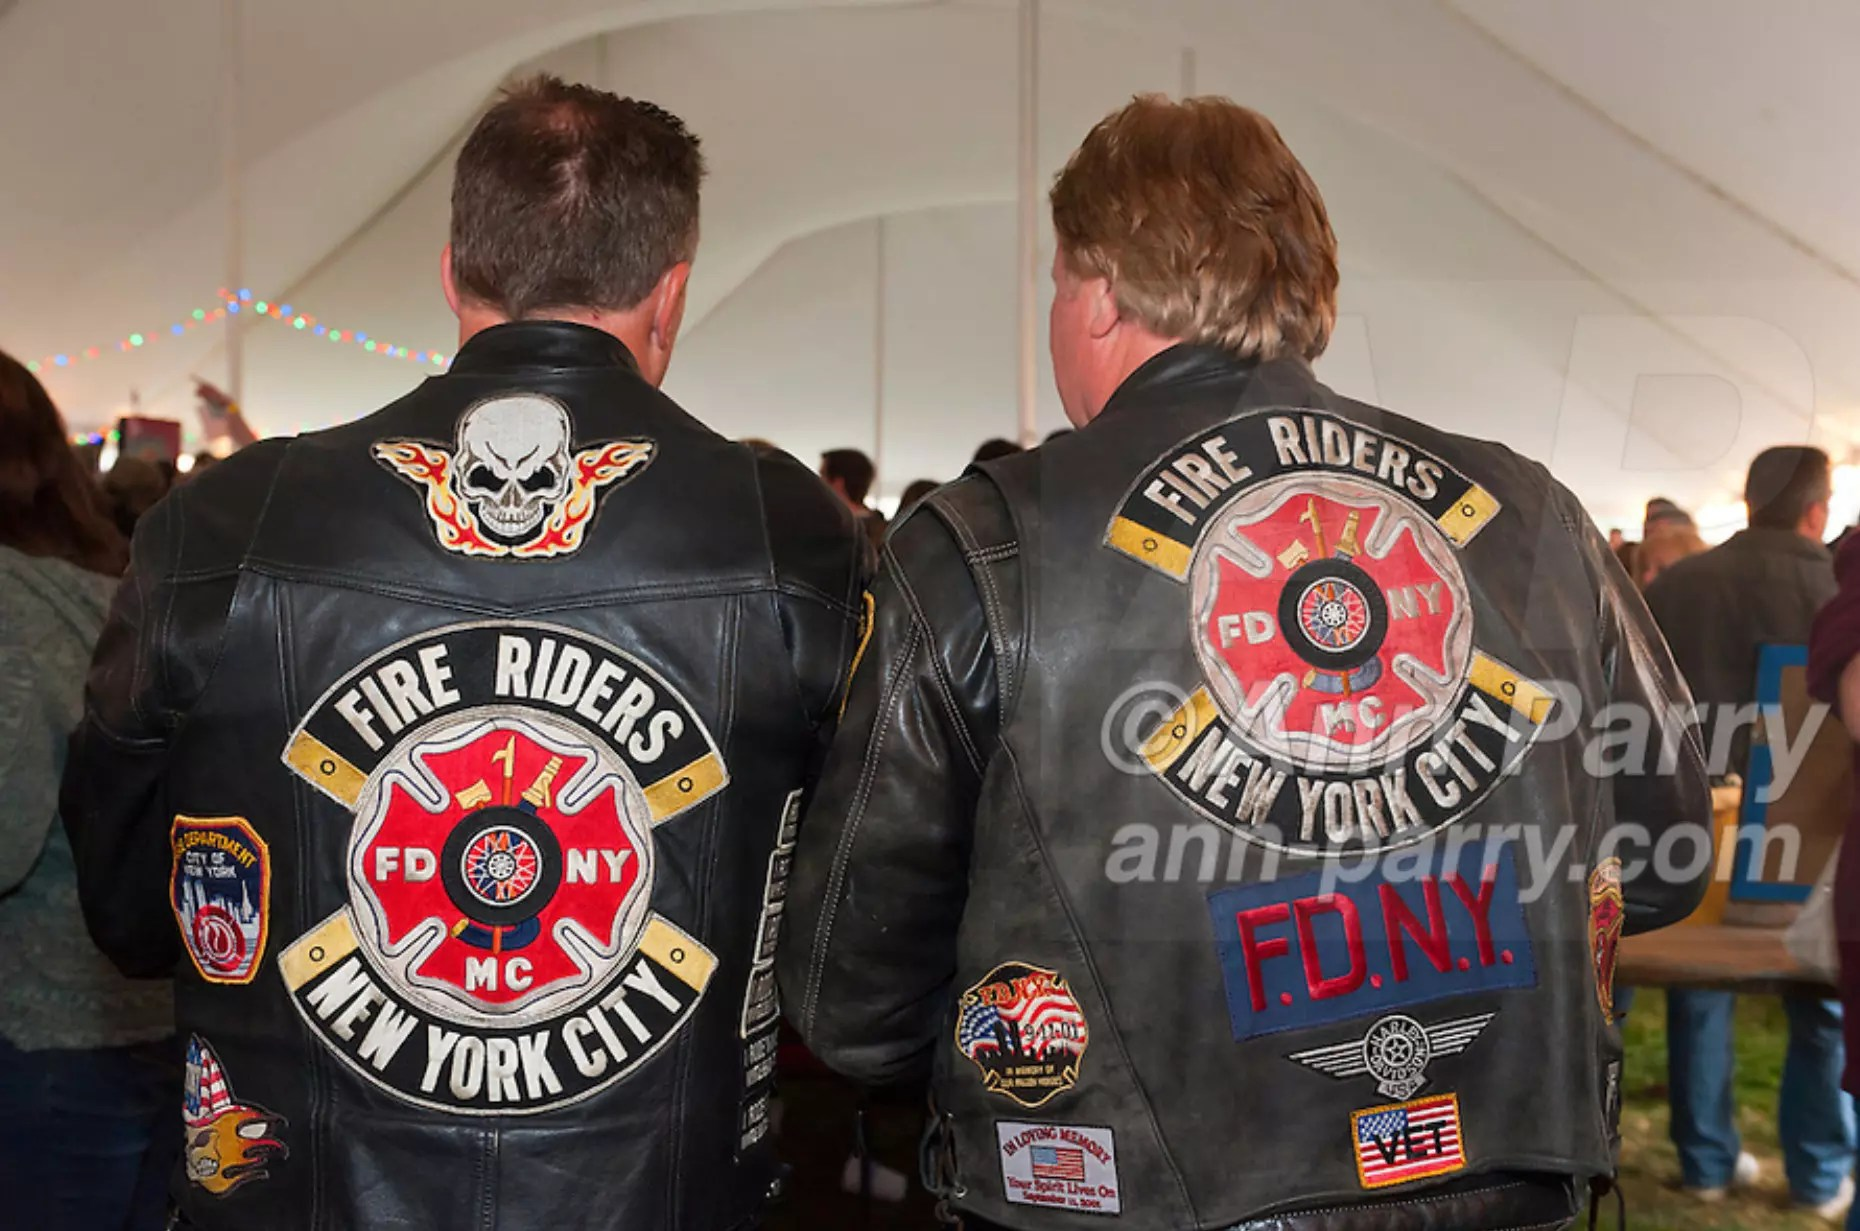 East Meadow, NY, USA. March 31, 2012. Fire Riders of New York City attend Fundraiser for firefighter Ray Pfeifer - battling cancer after months of recovery efforts at Ground Zero following 9/11 2001 Twin Towers attack - draws supporters from New York, Massachusetts and more, at East Meadow Firefighters Benevolent Hall.